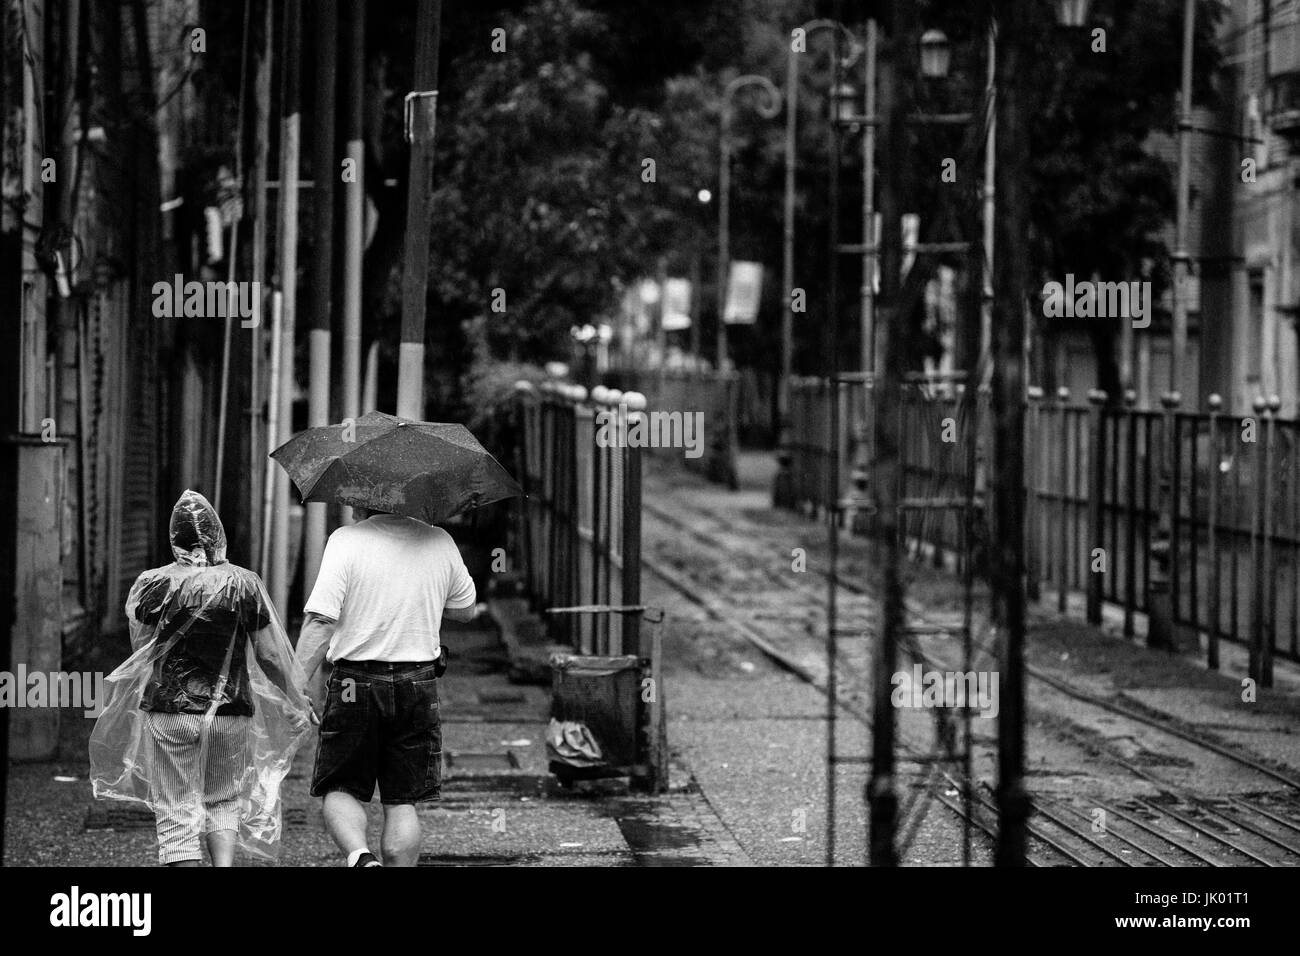 Tourist couple holding hands in the rain, while walking around La Boca, in Buenos Aires, Argentina. - Stock Image